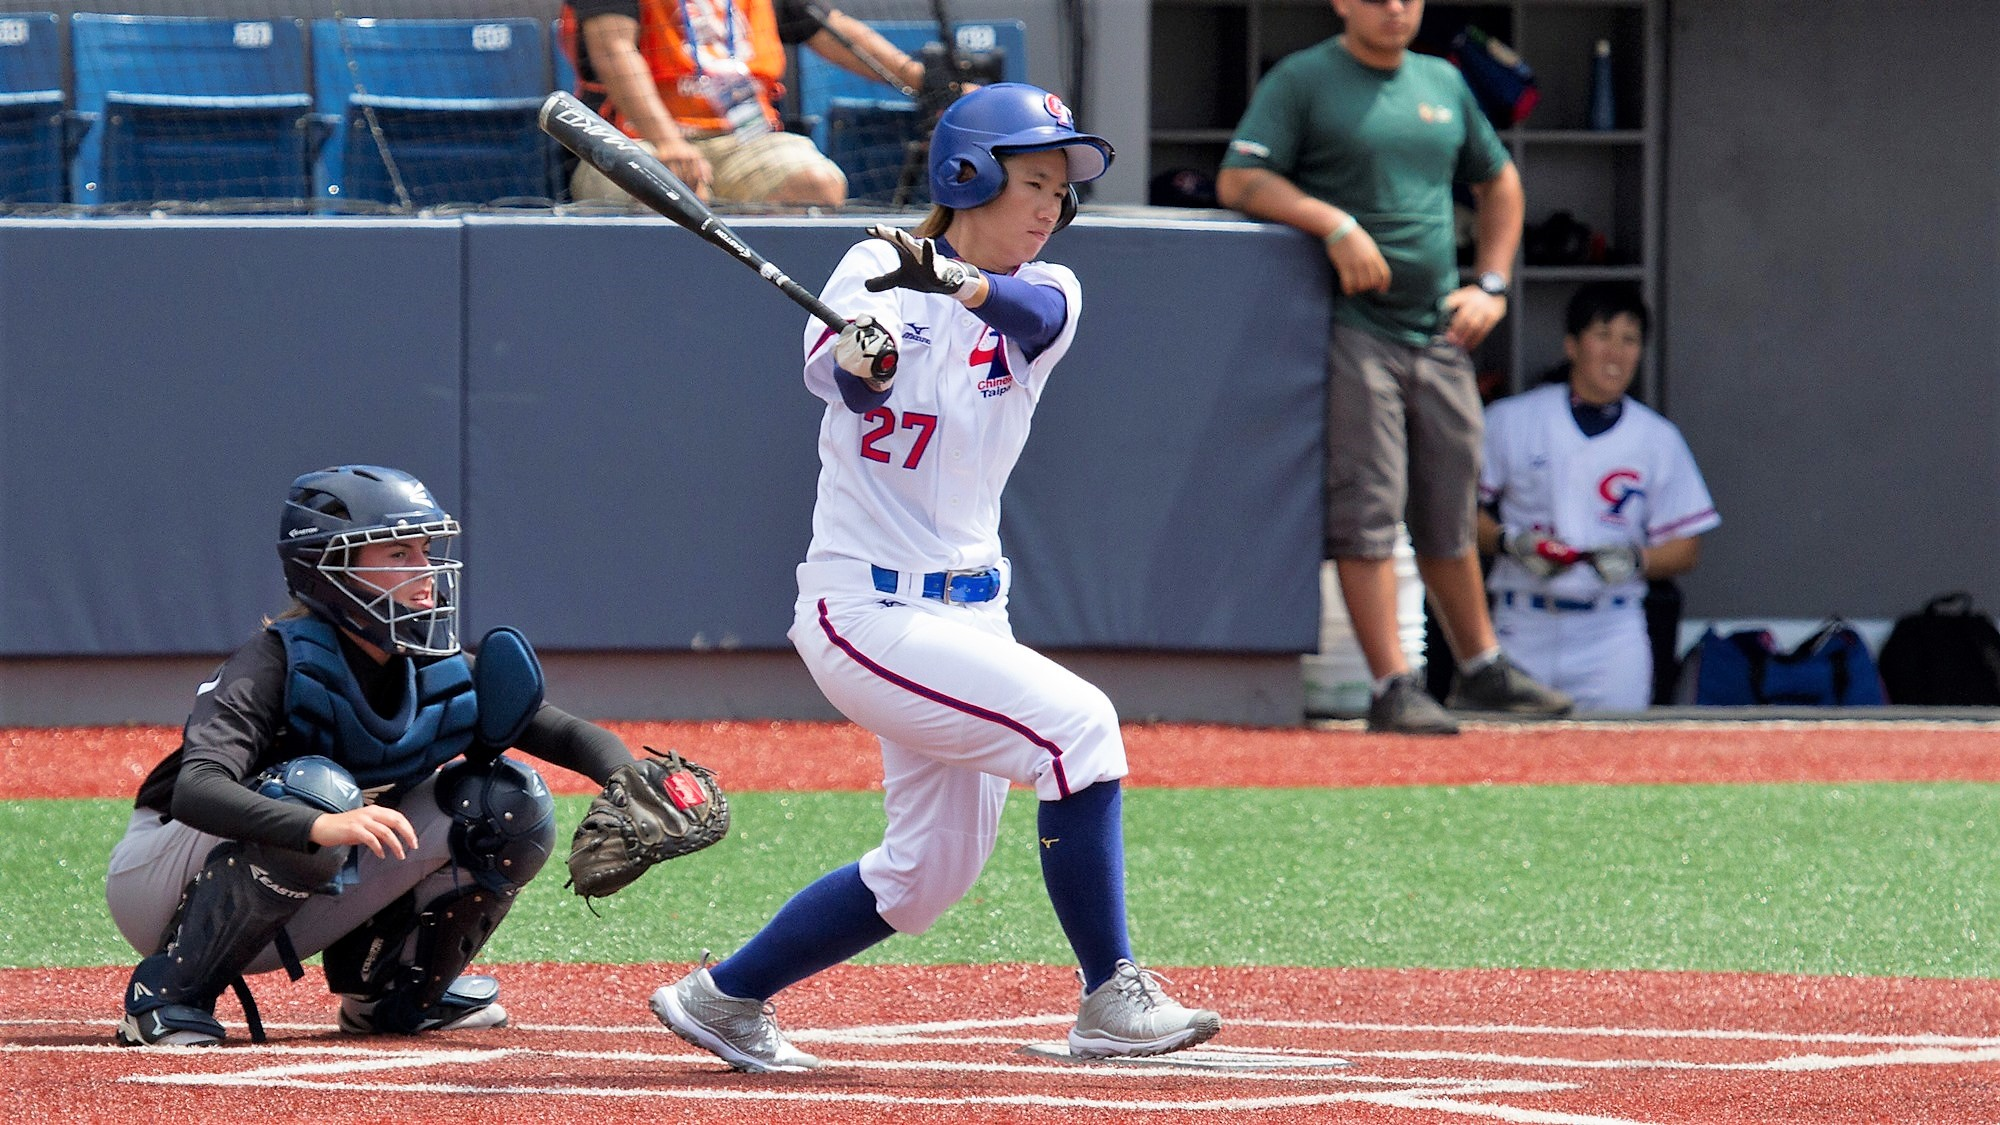 Tsai Ya Ling at bat